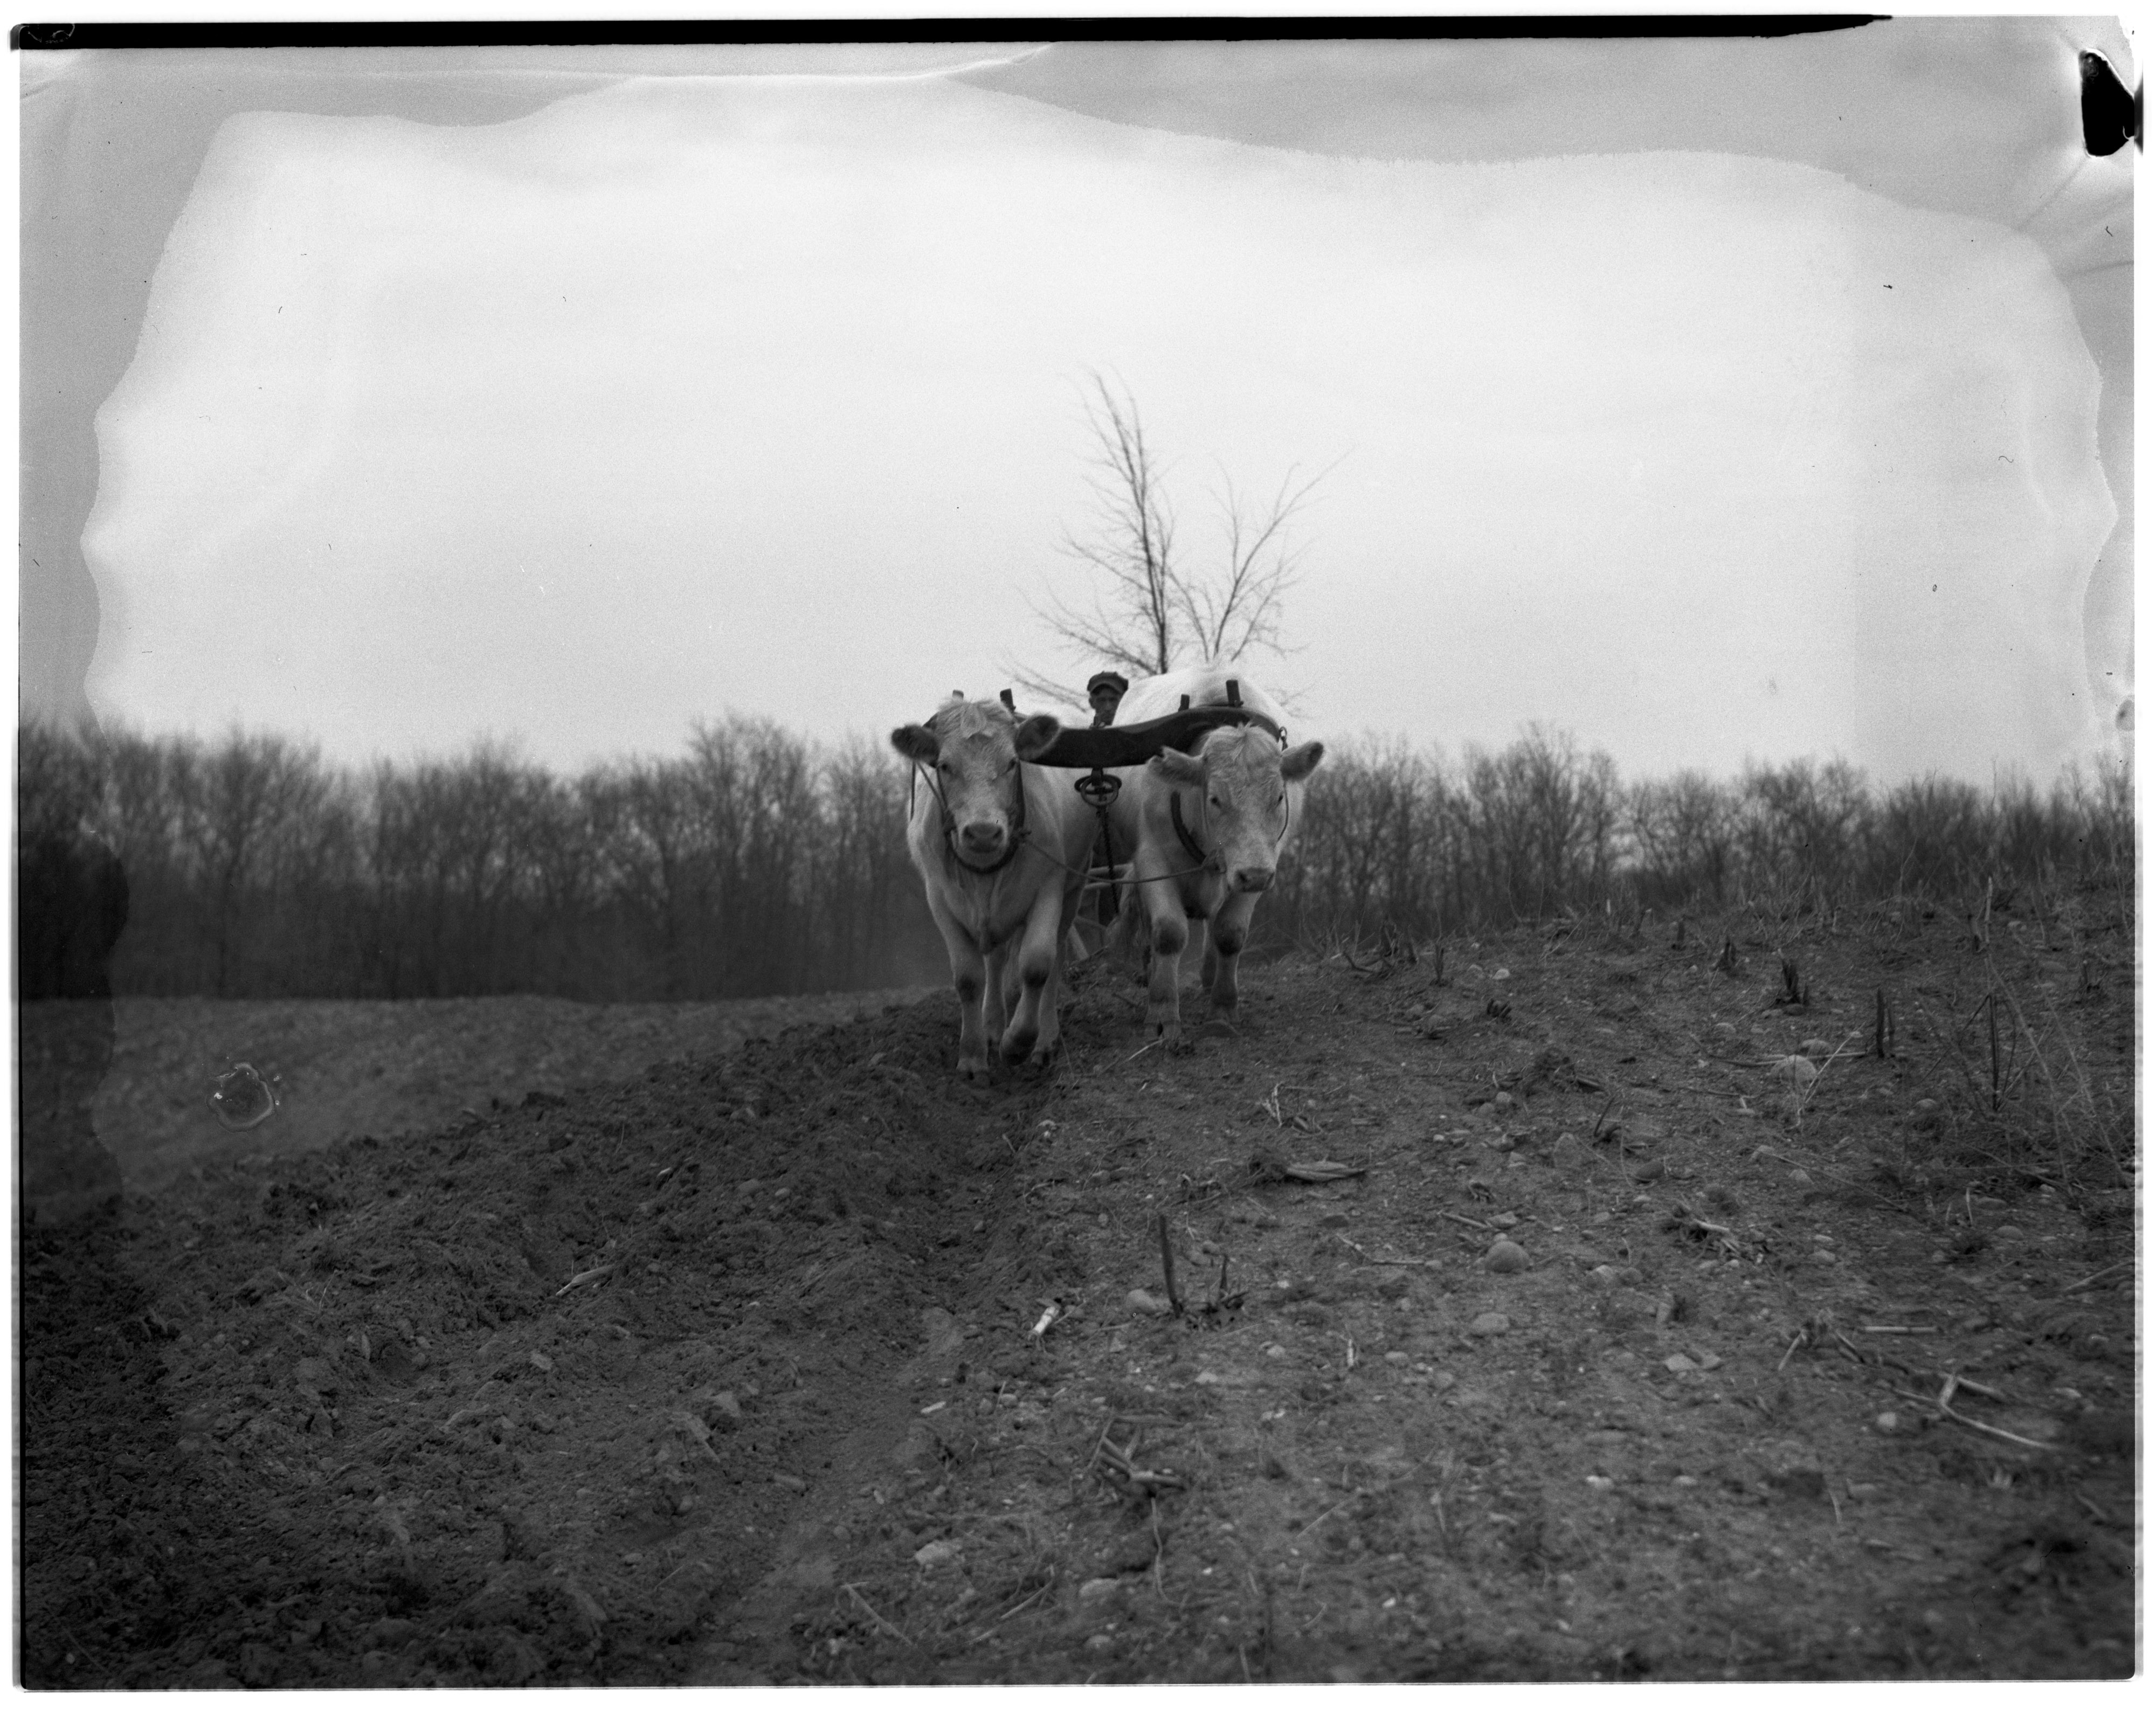 White Oxen Plowing A Field image